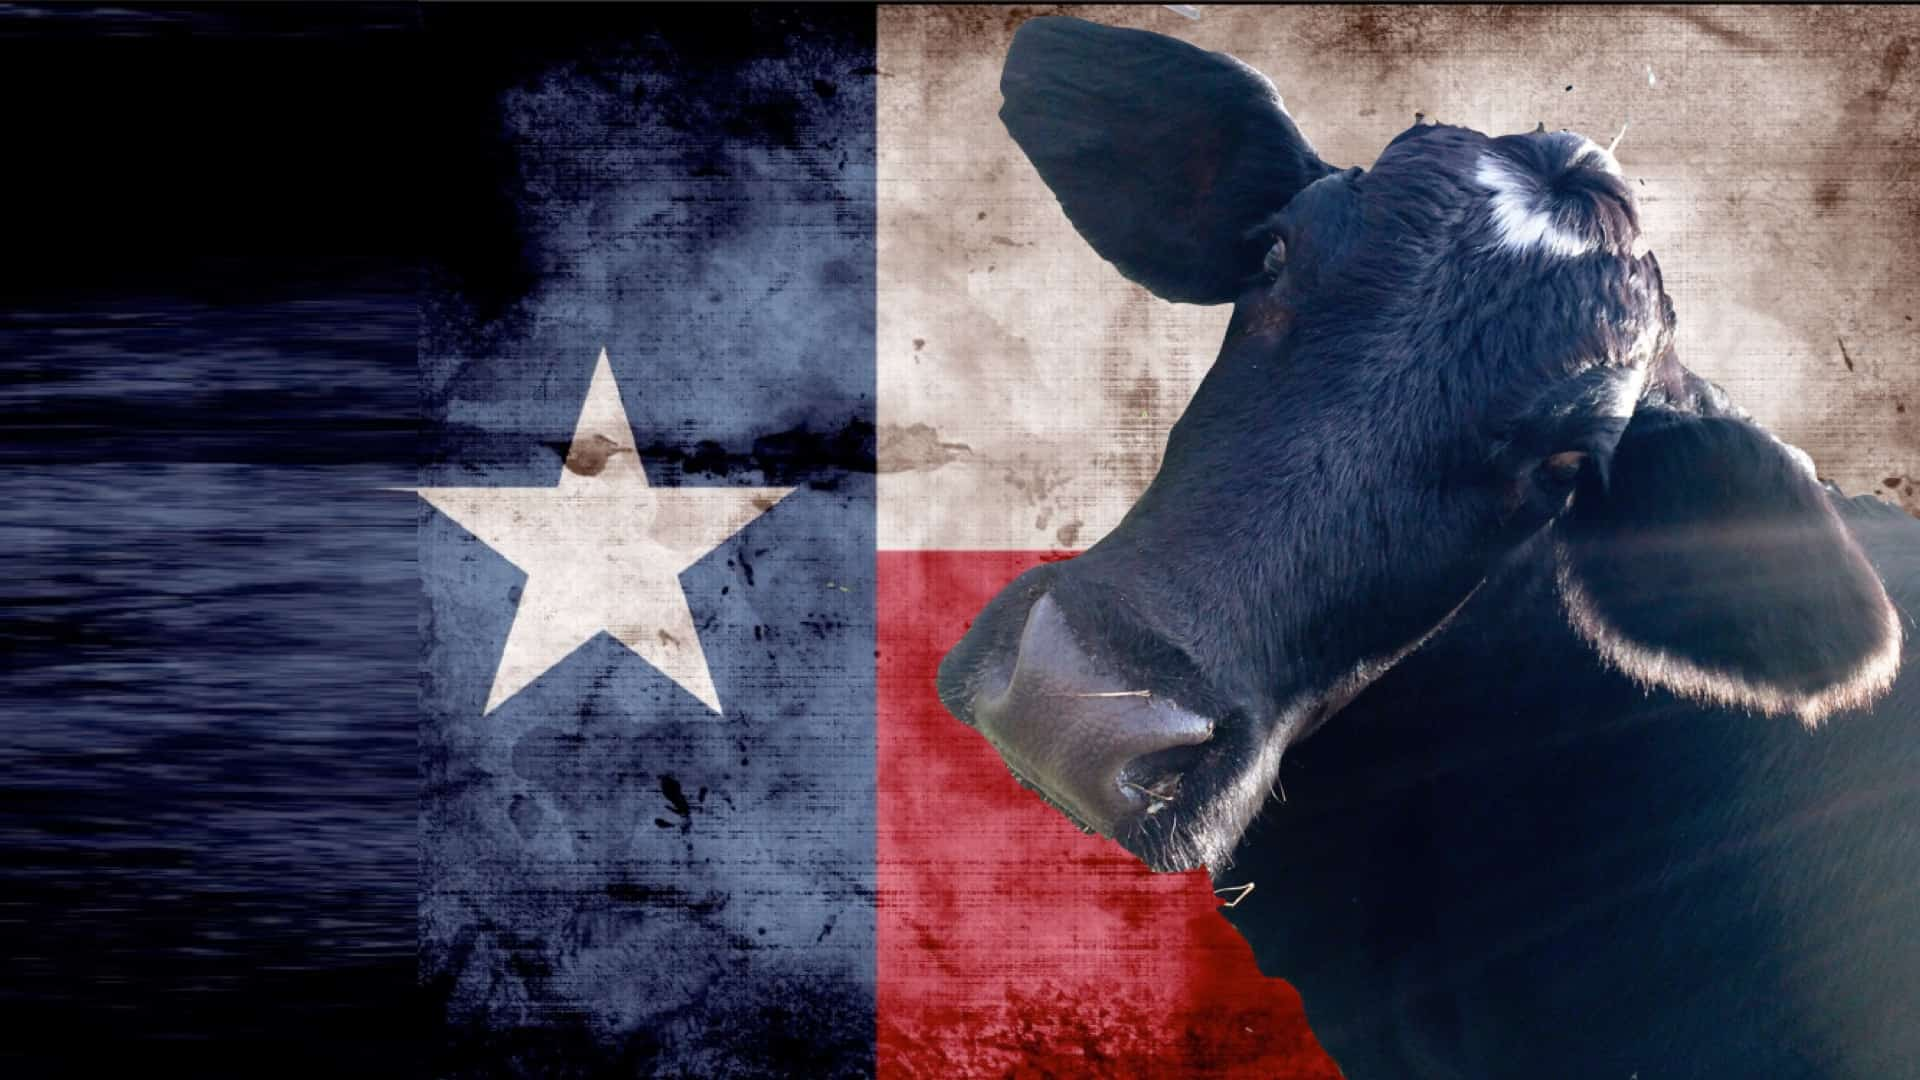 The background is taken up by the flag of Texas. In close up, in the foreground is the head and shoulders of a beautiful black cow. The cow is looking directly into the camera.